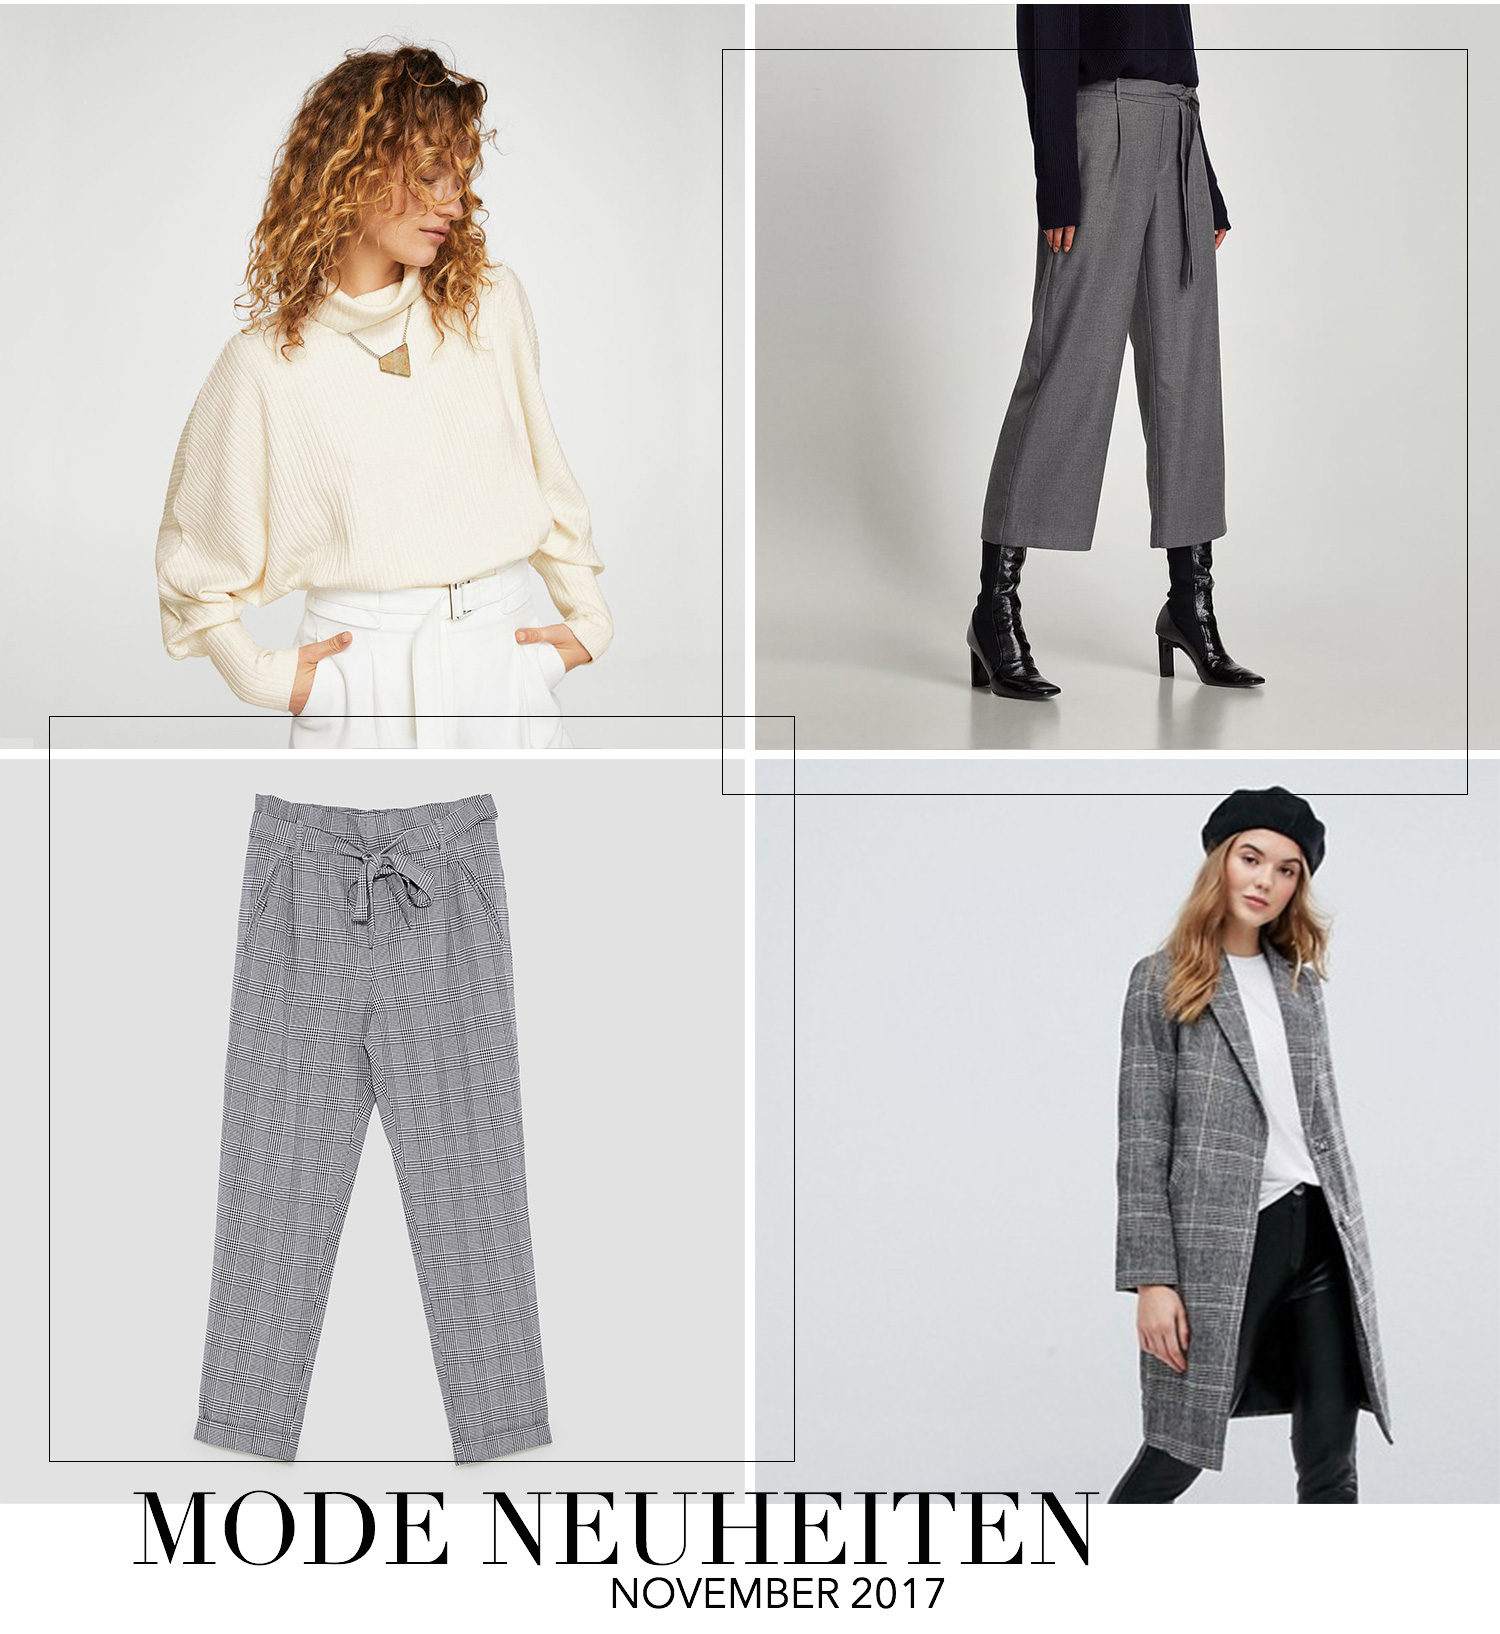 November Favoriten 2017, Monatsrückblick, Mode Neuheiten, Karierter Mantel New Look, Karo Hose Zara, graue Culotte Zara, bezauberndenana.de